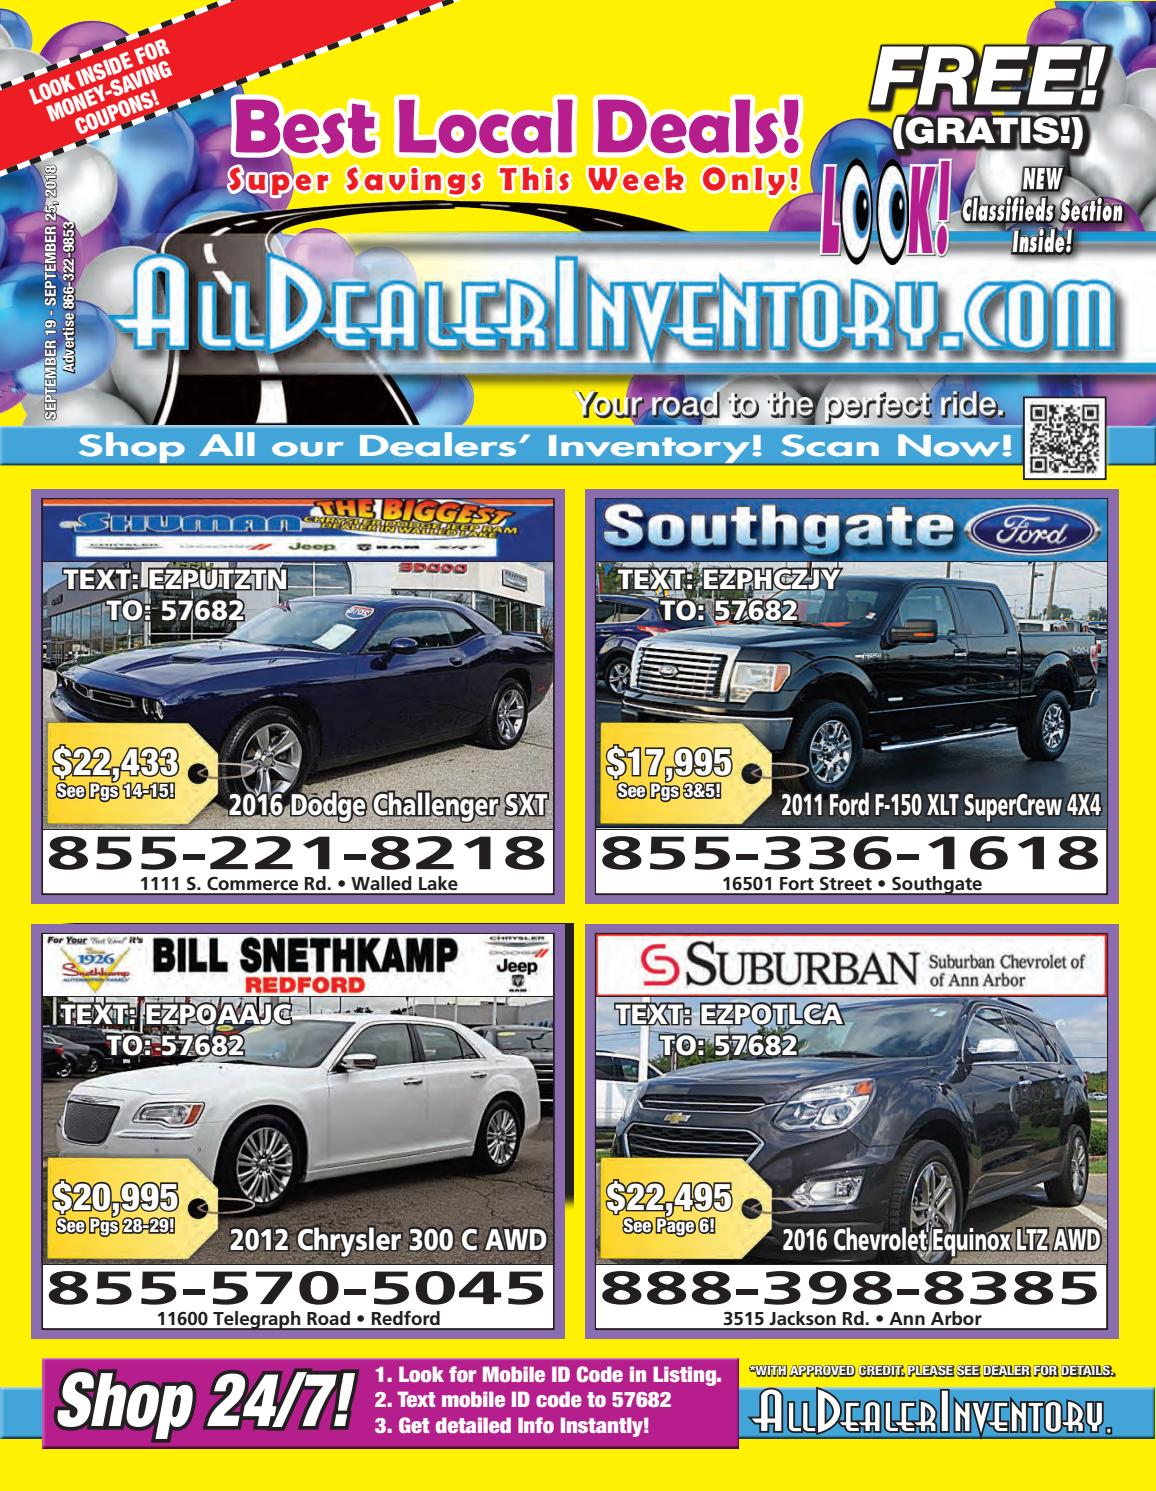 All Dealer Inventory's September 19th Sales Edition! Shop The Best